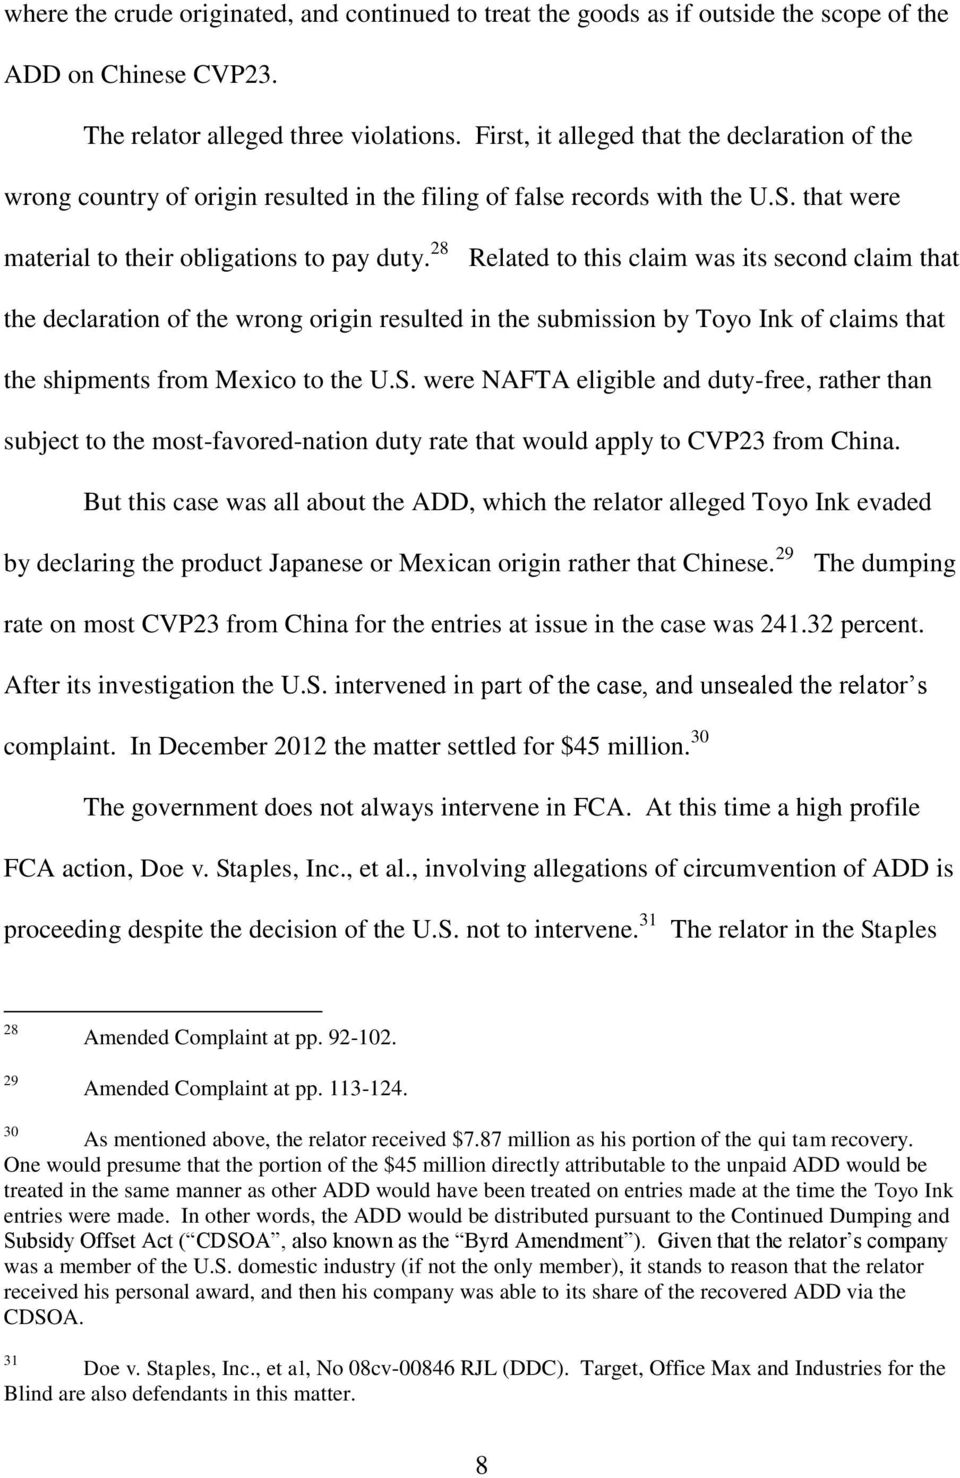 28 Related to this claim was its second claim that the declaration of the wrong origin resulted in the submission by Toyo Ink of claims that the shipments from Mexico to the U.S.